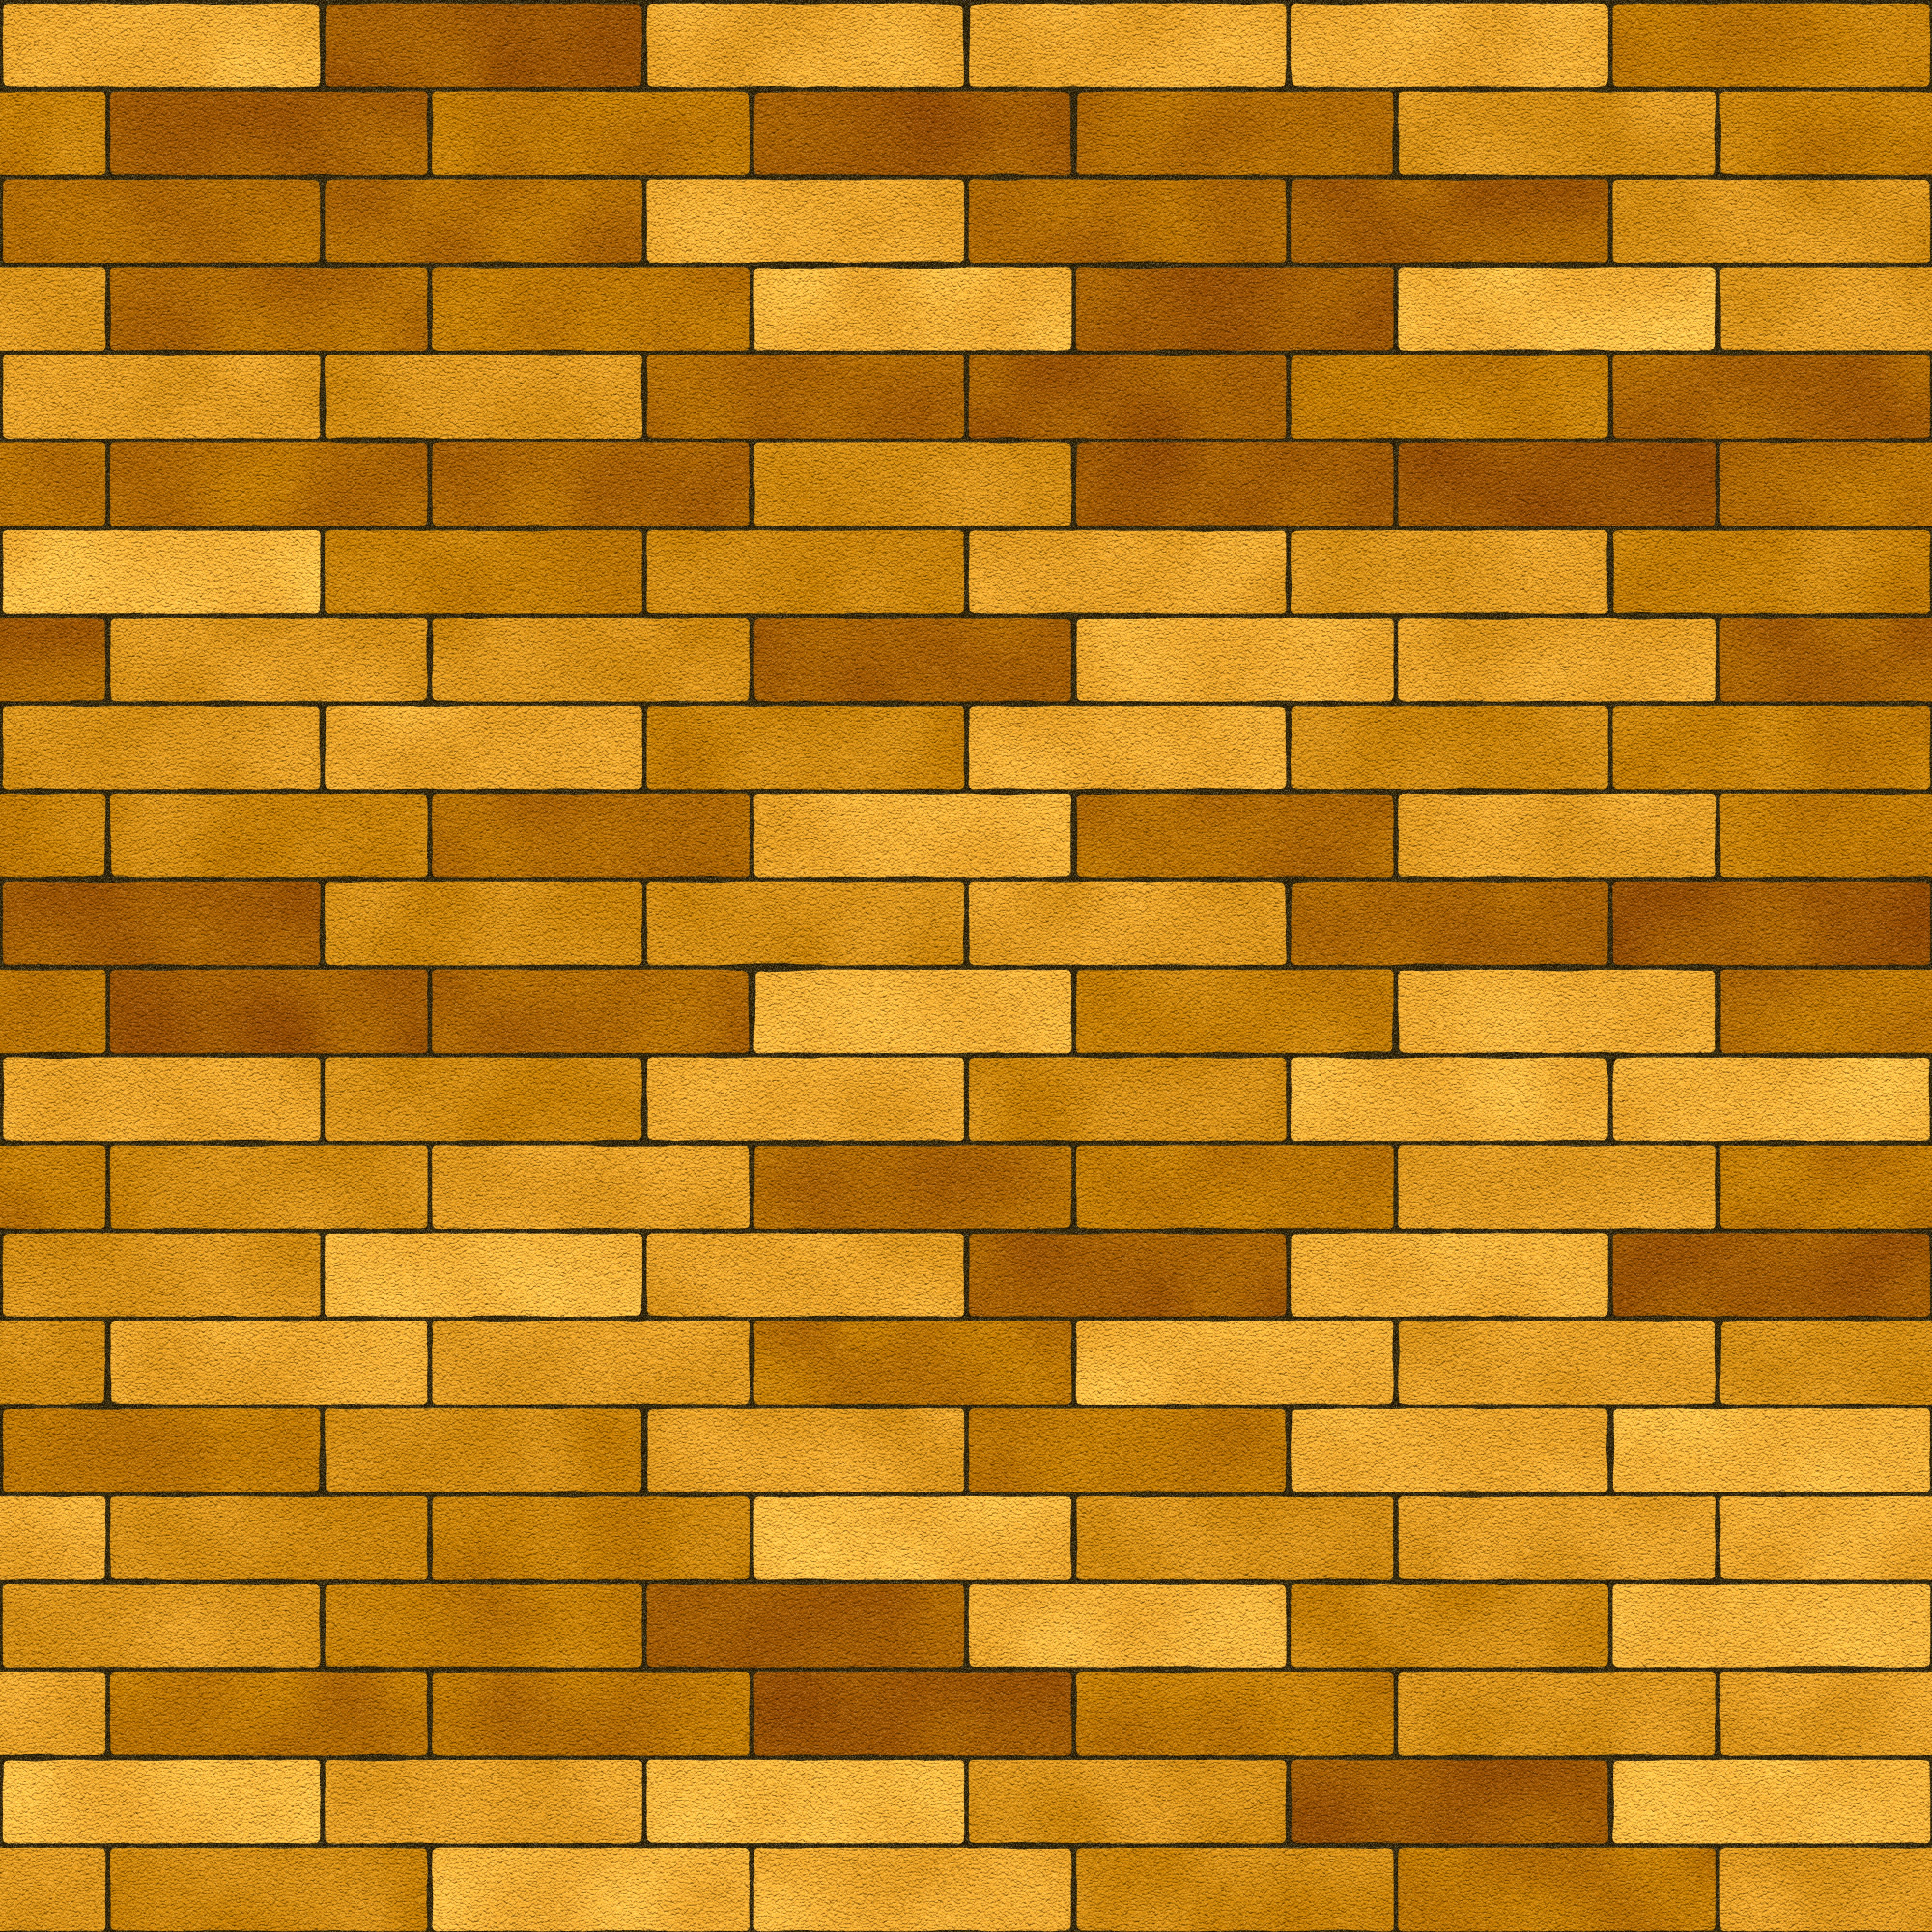 yellow brick wall texture, yellow brick wall, download photo, background, texture